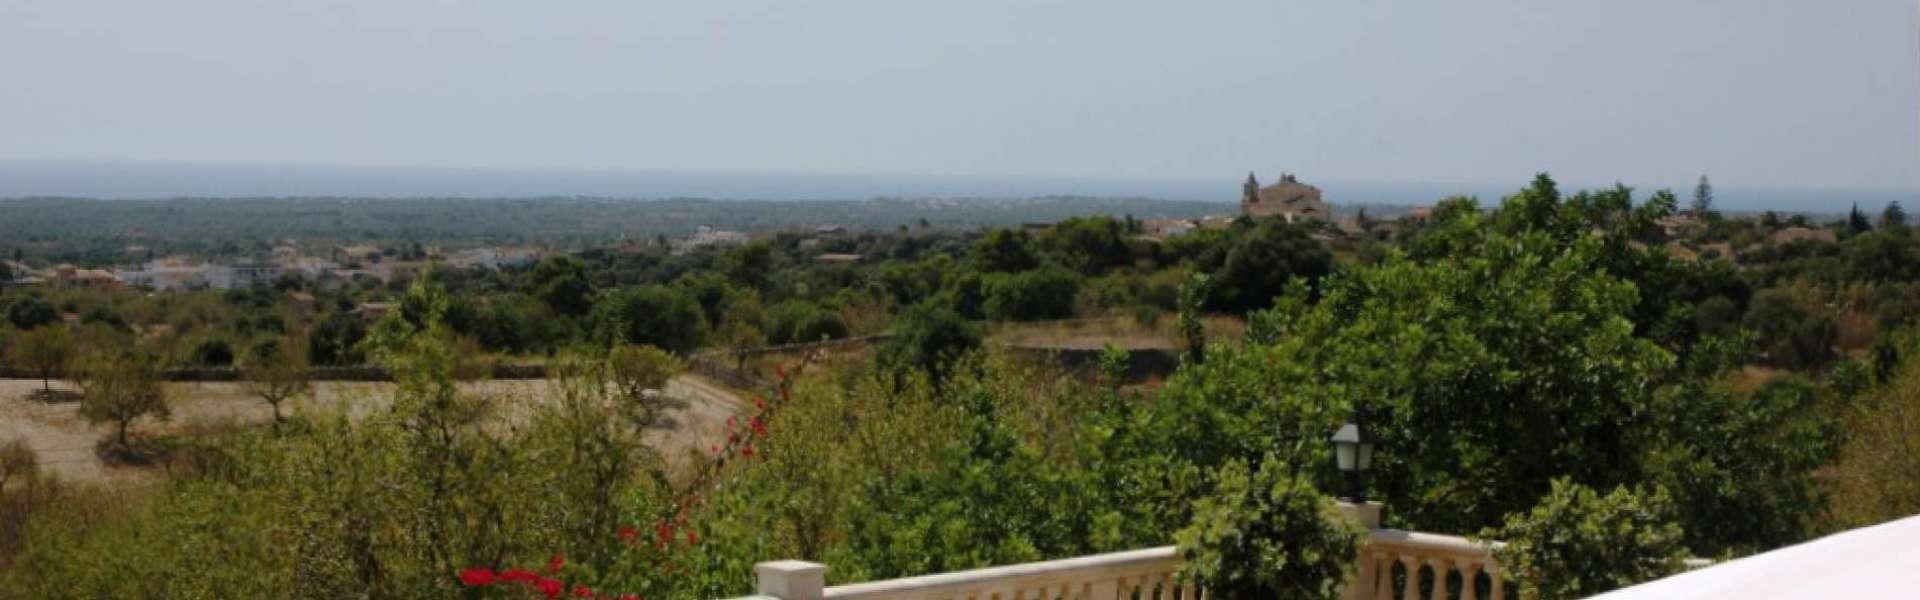 Alqueria Blanca - Country estate with fantastic views